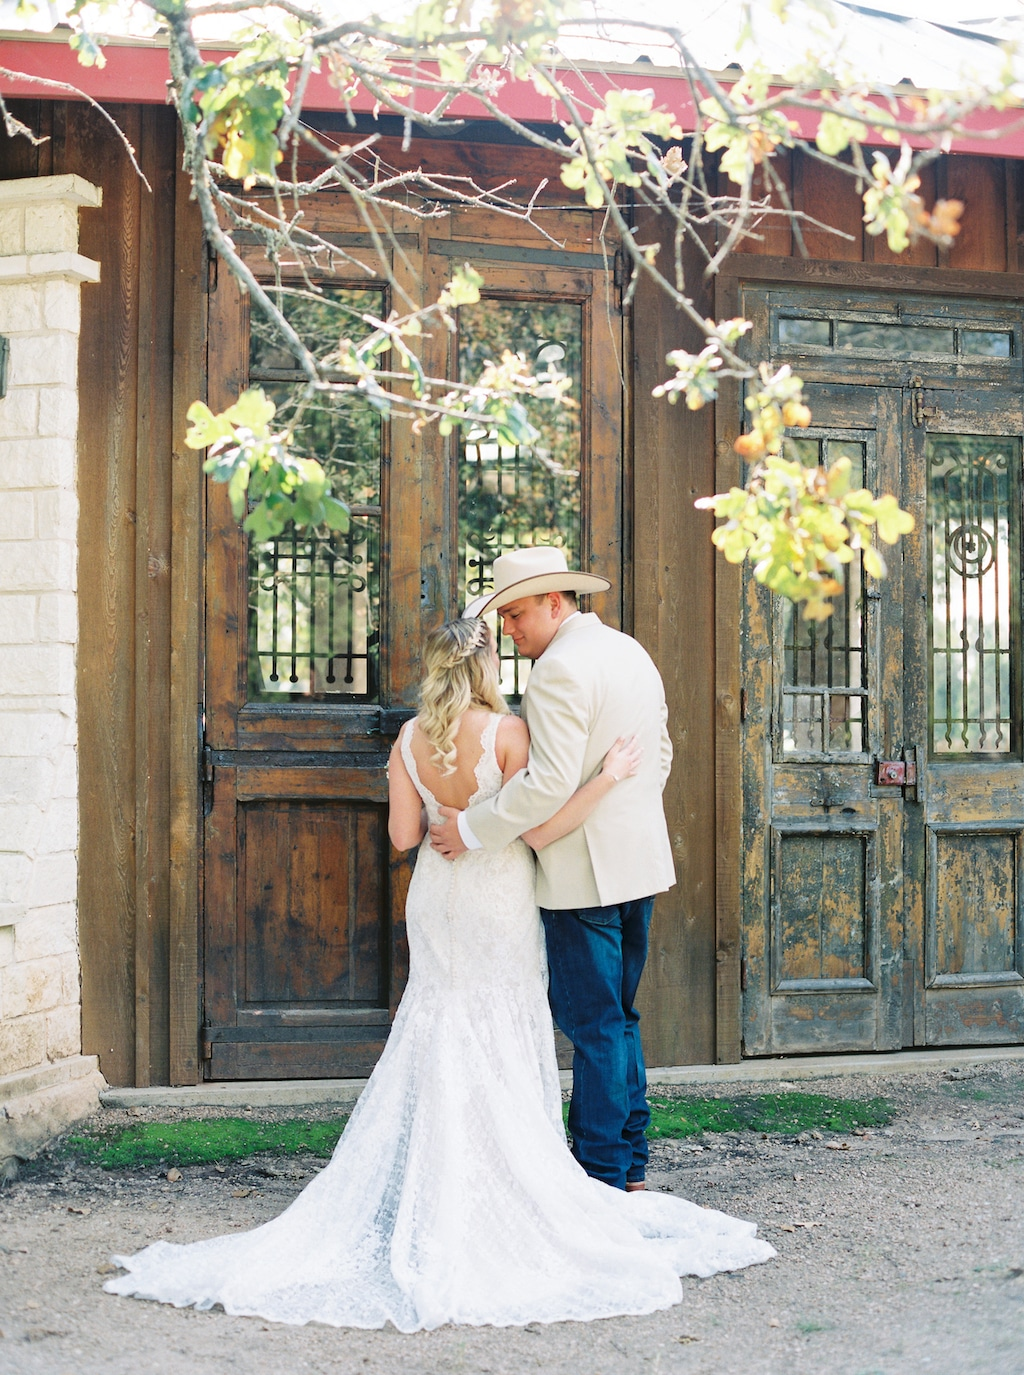 A bride and groom, with their backs to the camera, hug each other next to pairs of weathered doors outside at a Georgetown, Texas wedding venue.